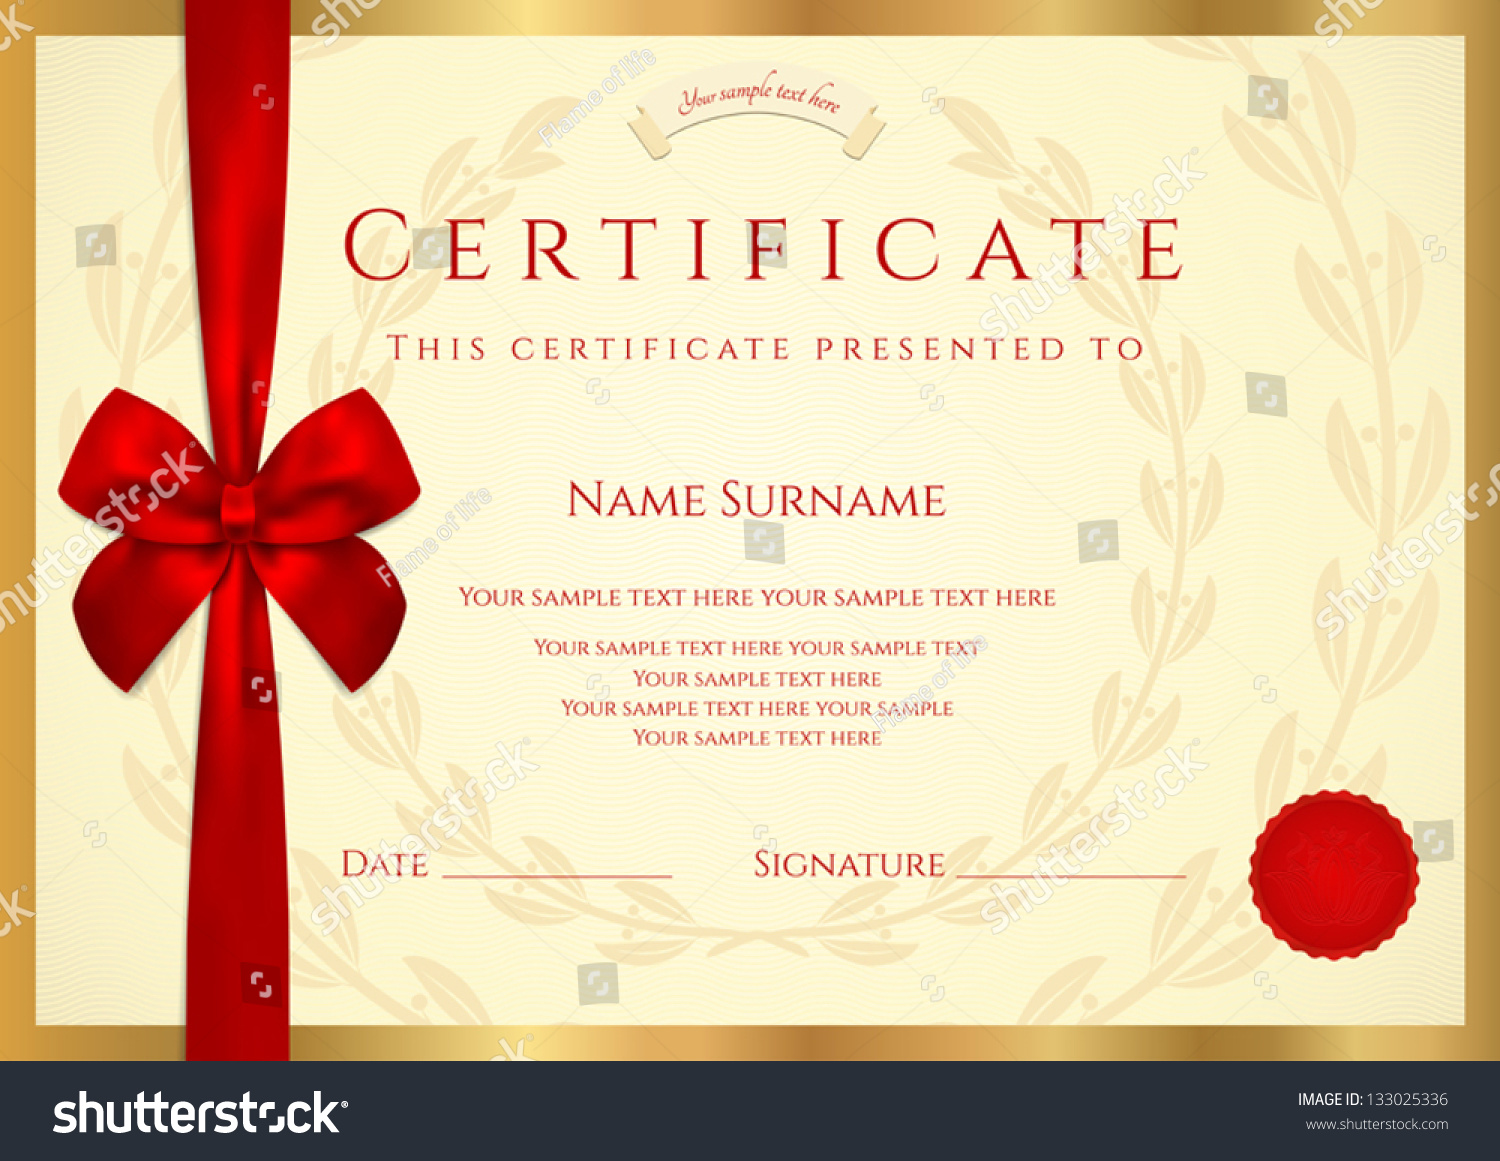 Certificate completion template wax seal border stock vector certificate of completion template with wax seal border and red bow ribbon yelopaper Image collections